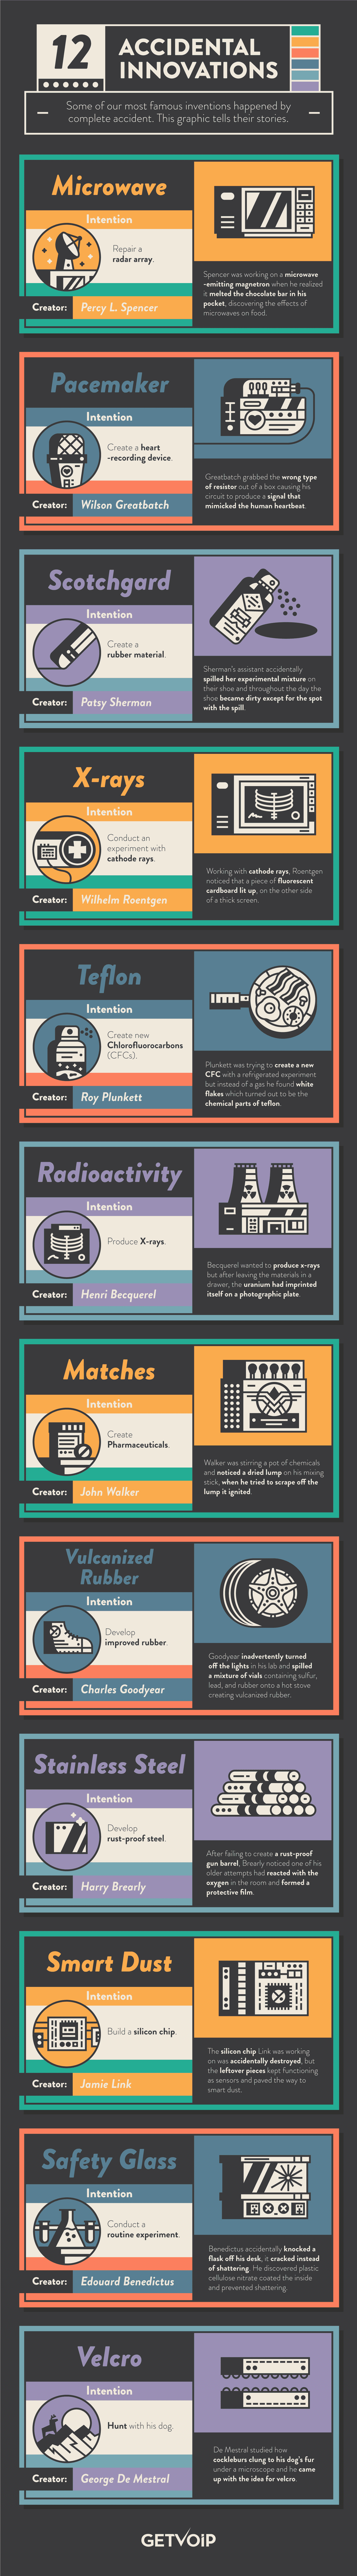 Accidental Innovations Infographic